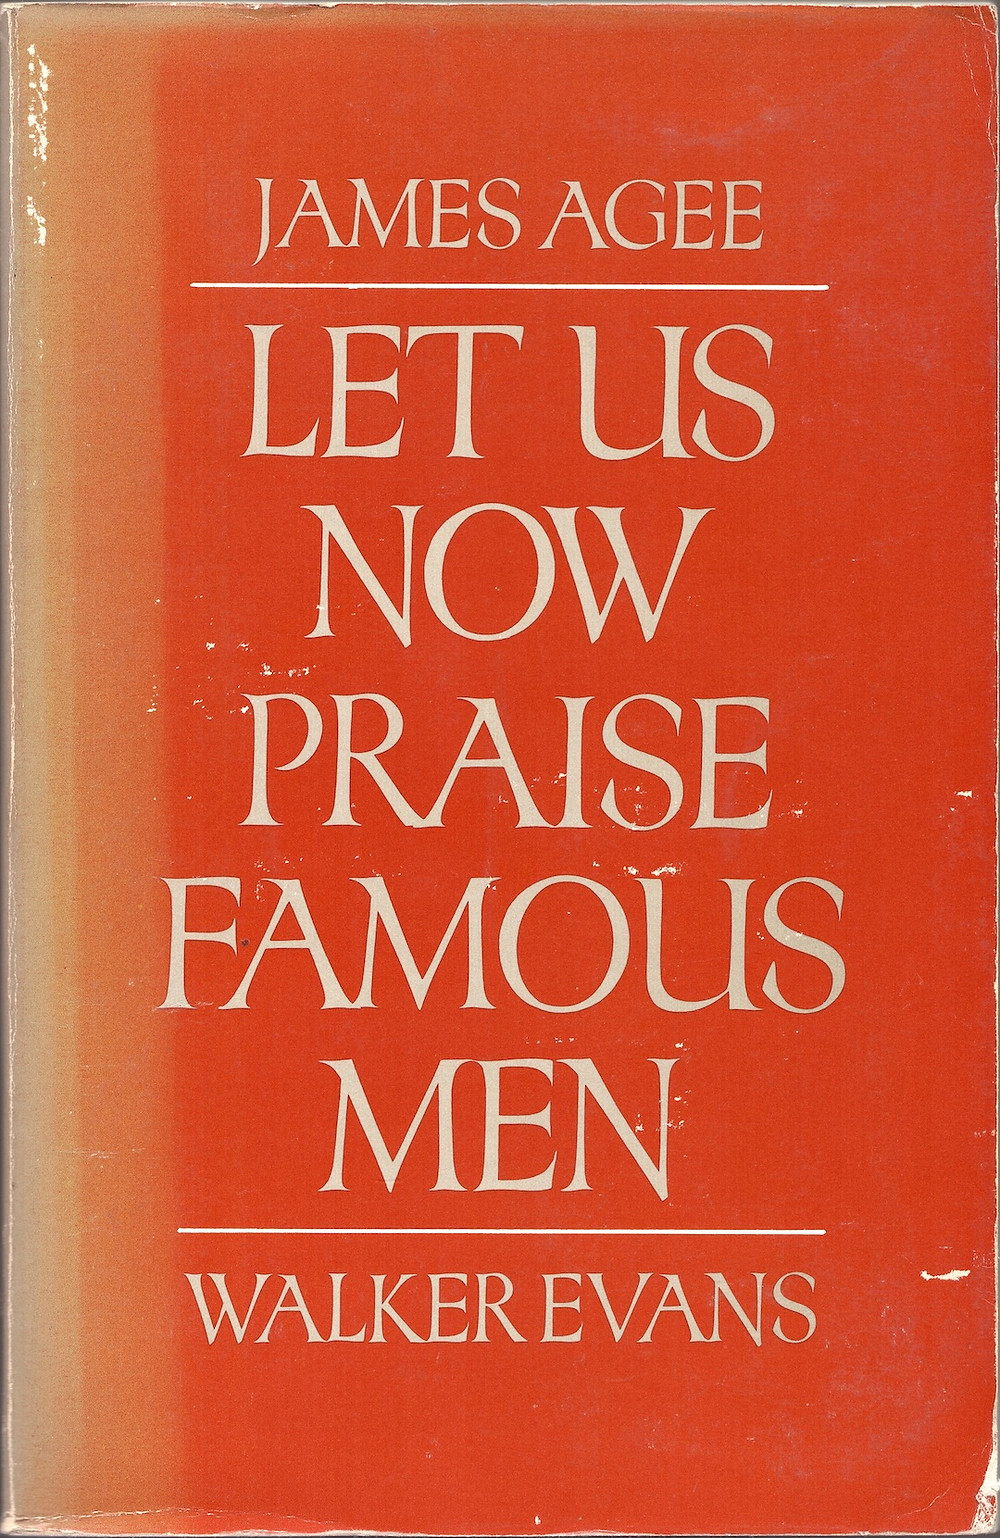 Cover of Let Us Now Praise Famous Men, by James Agee and Walker Evans